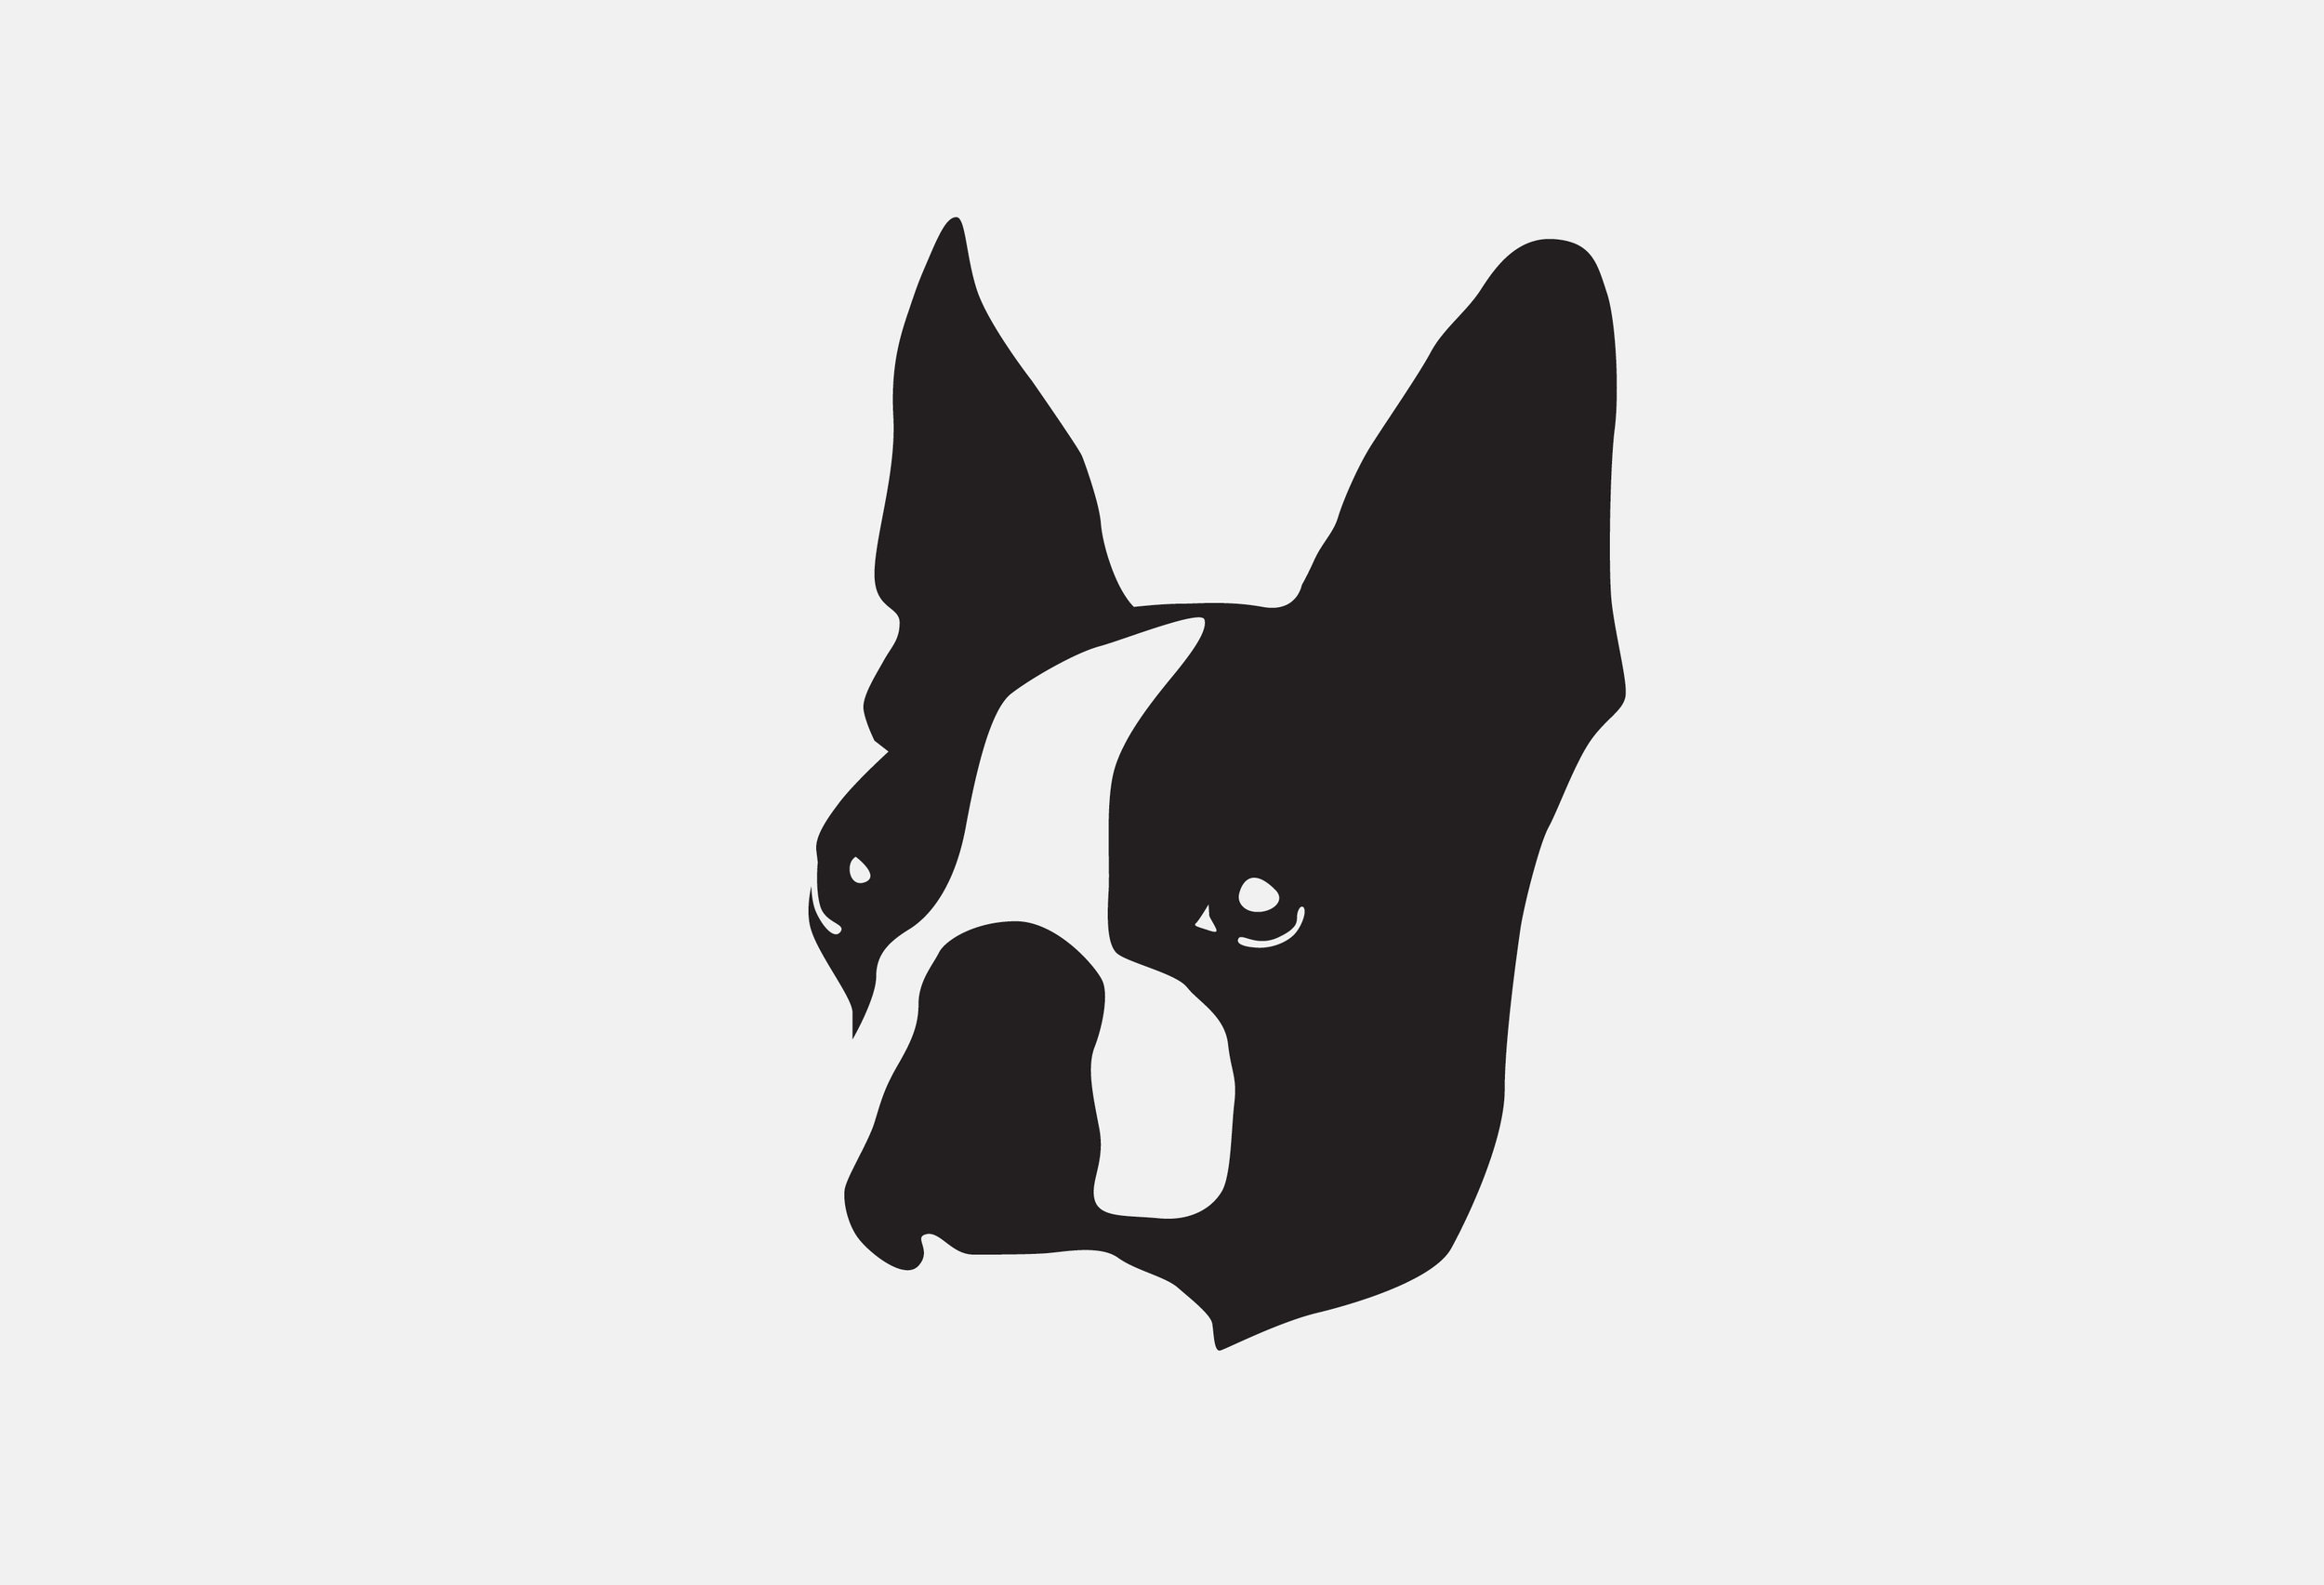 Mascot Images of Project dog4.jpg